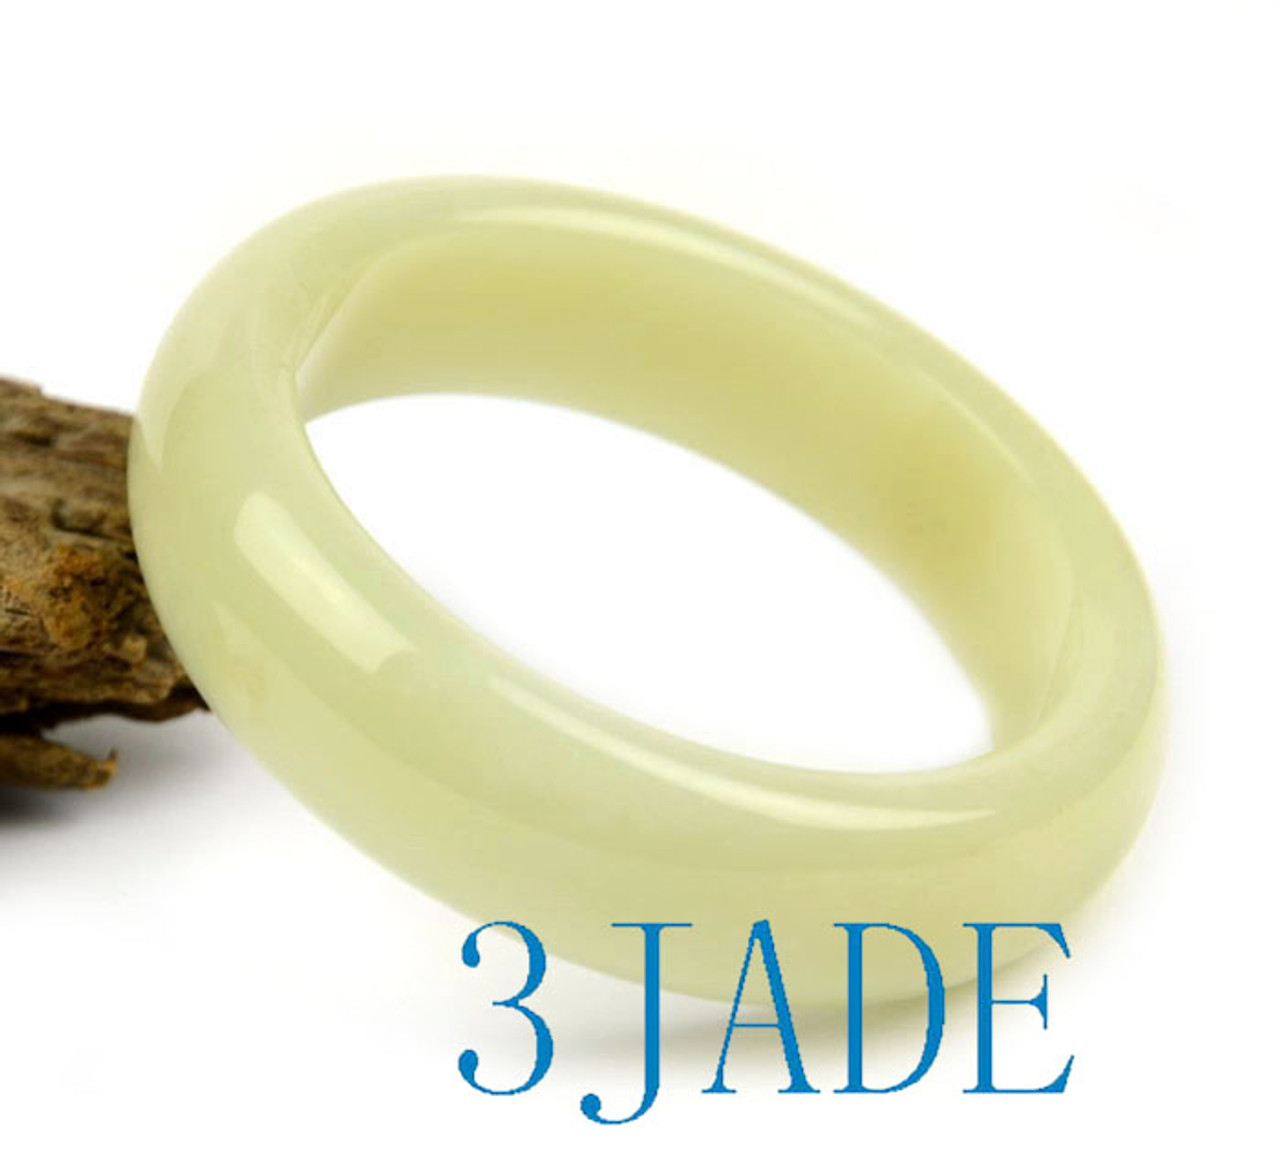 60mm Natural Creamy White Nephrite Jade D Shape Bangle Bracelet w/ Certificate